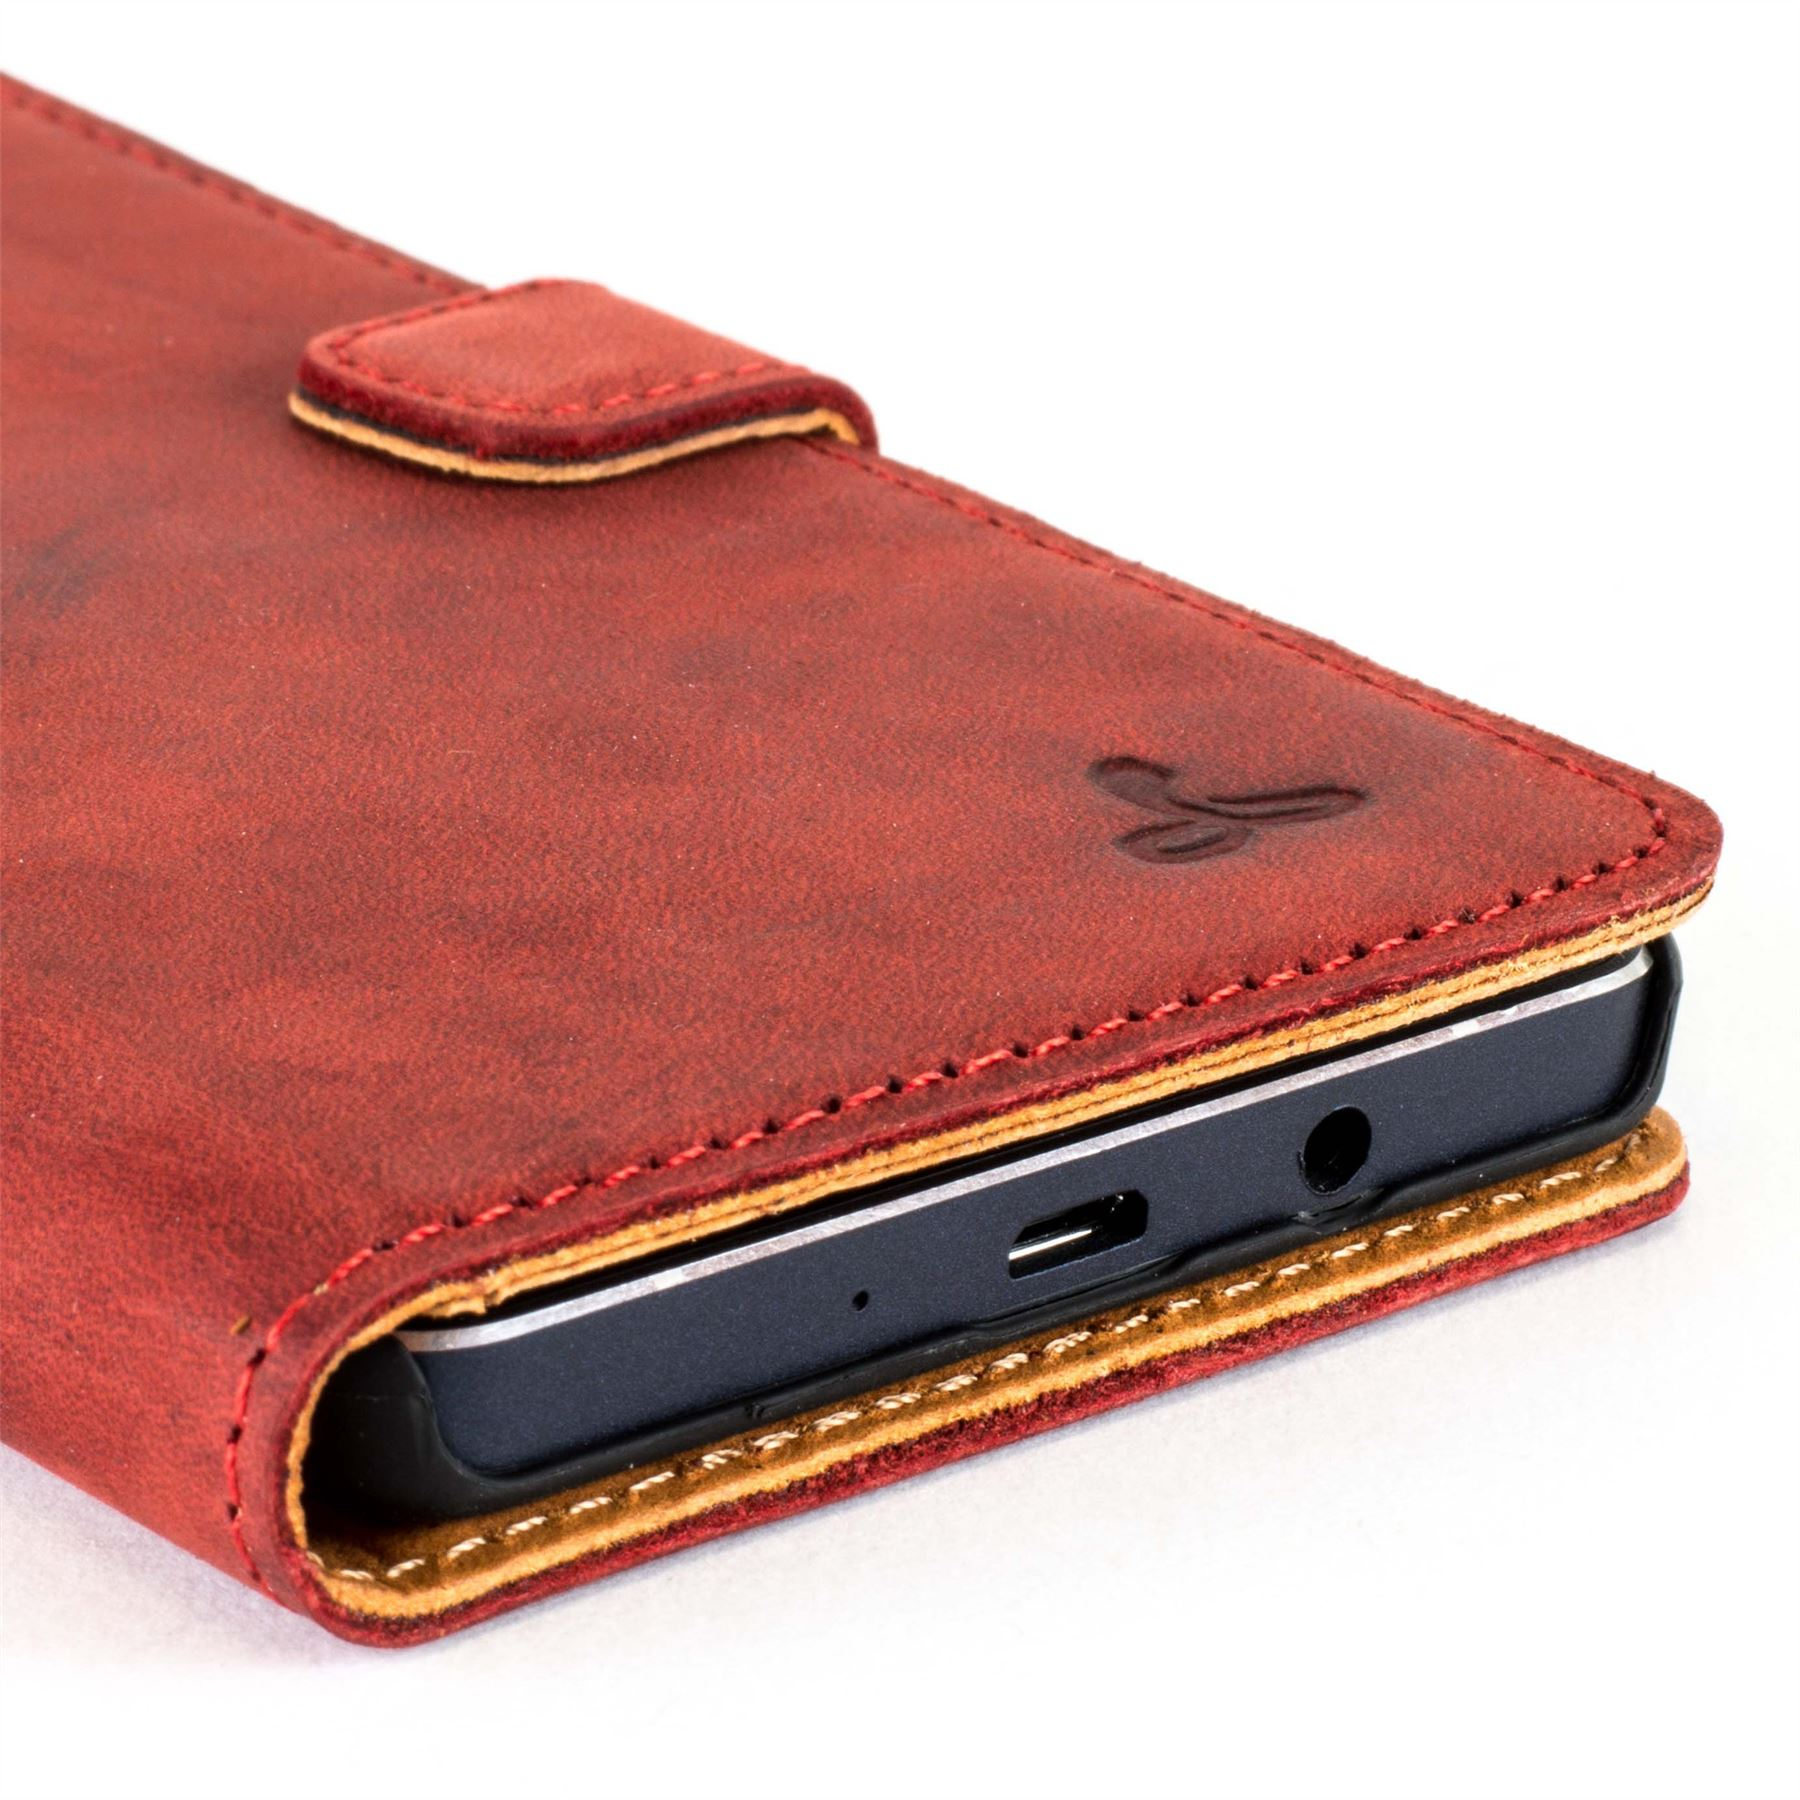 best website 90903 27736 Details about Snakehive Samsung A5 (2016) Premium Genuine Leather Wallet  Case w/ Card Slots